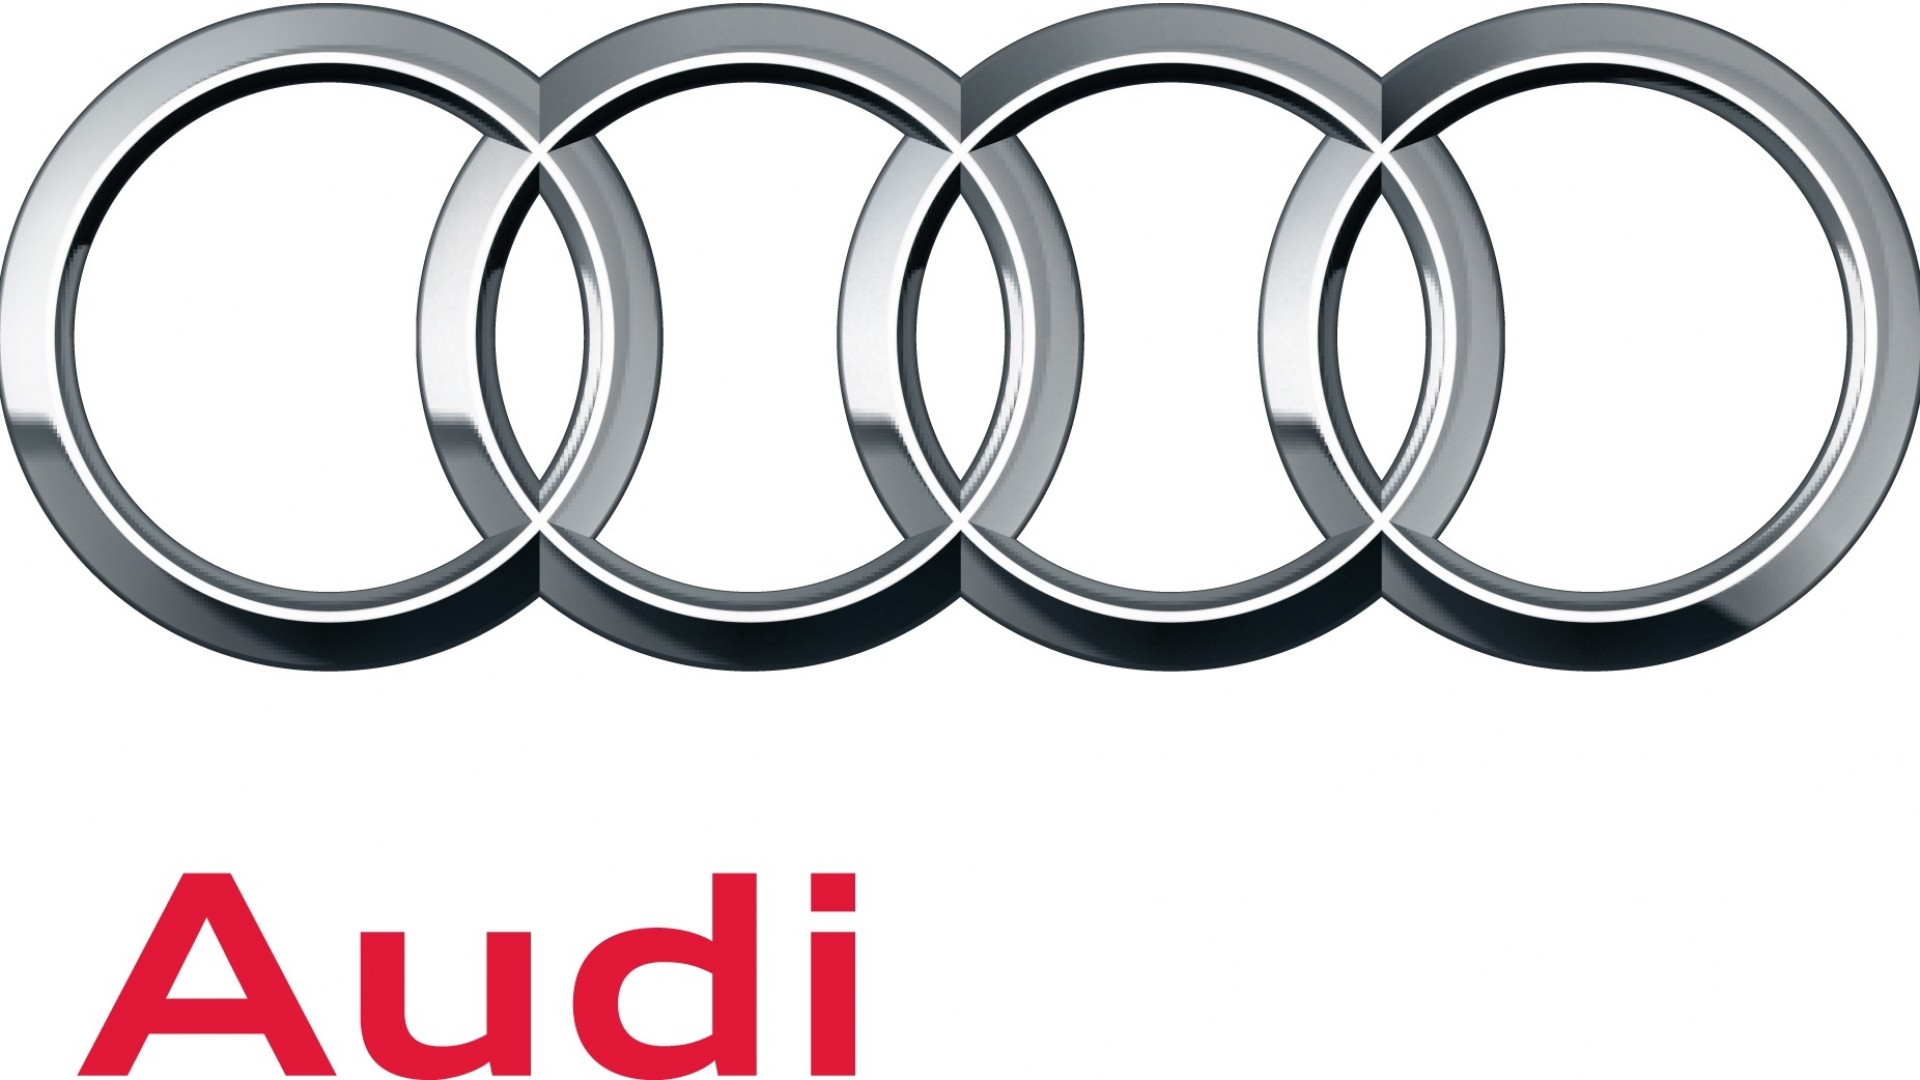 Top 10 Audi Logo Wallpaper Full Hd